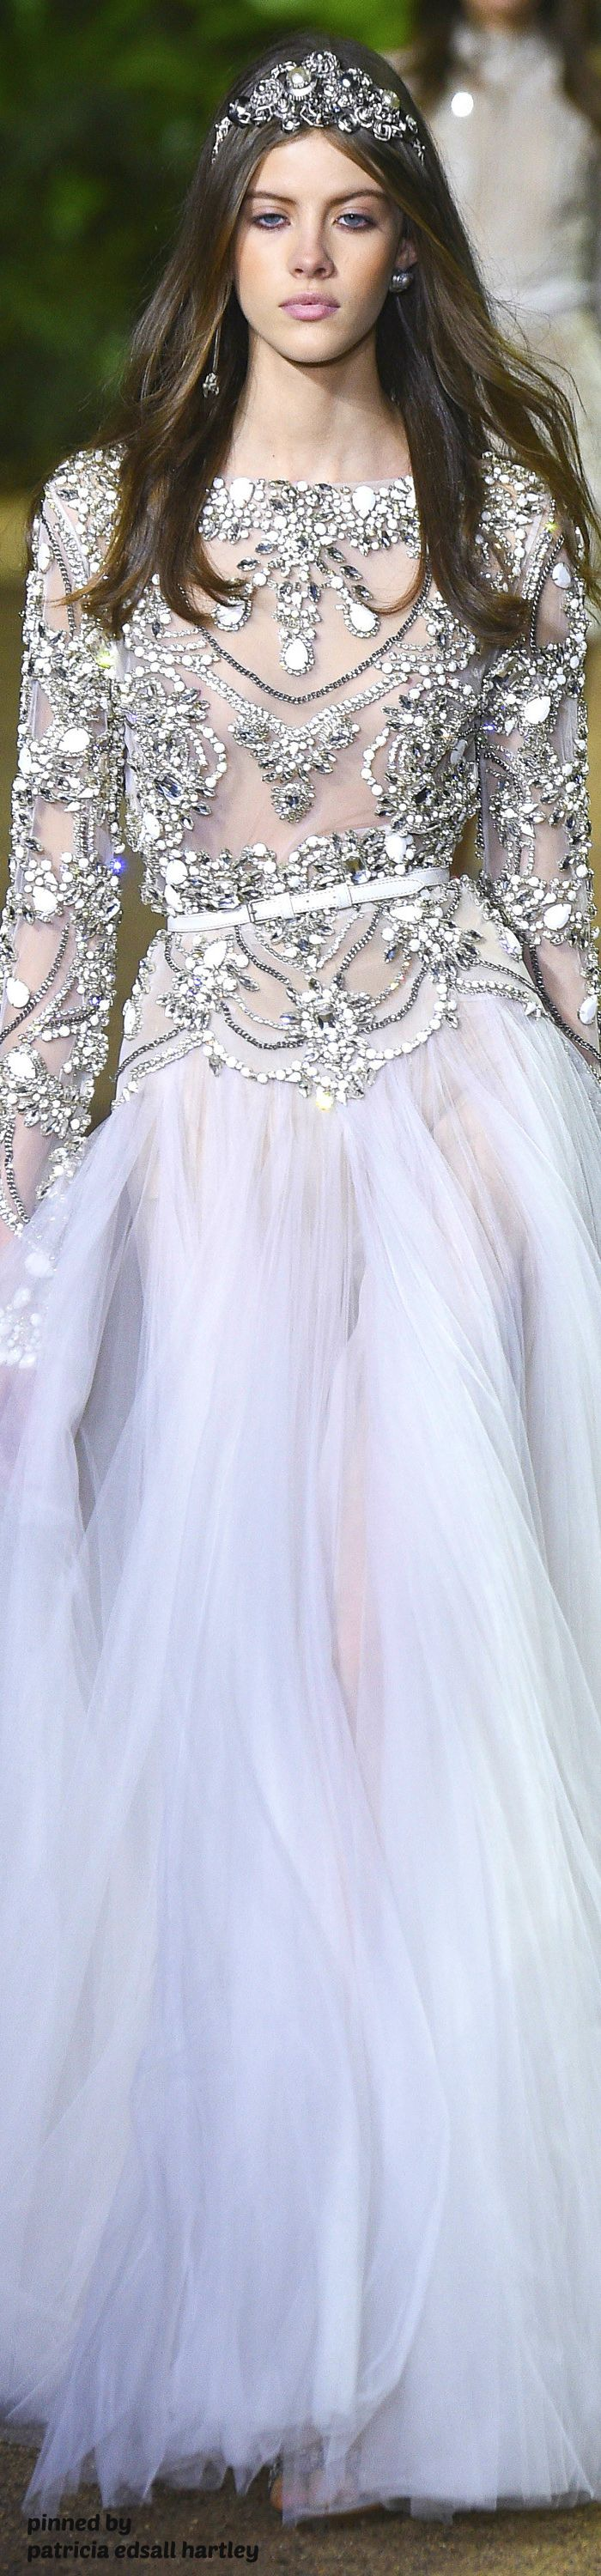 Elie Saab Spring 2016 Couture Fashion Show